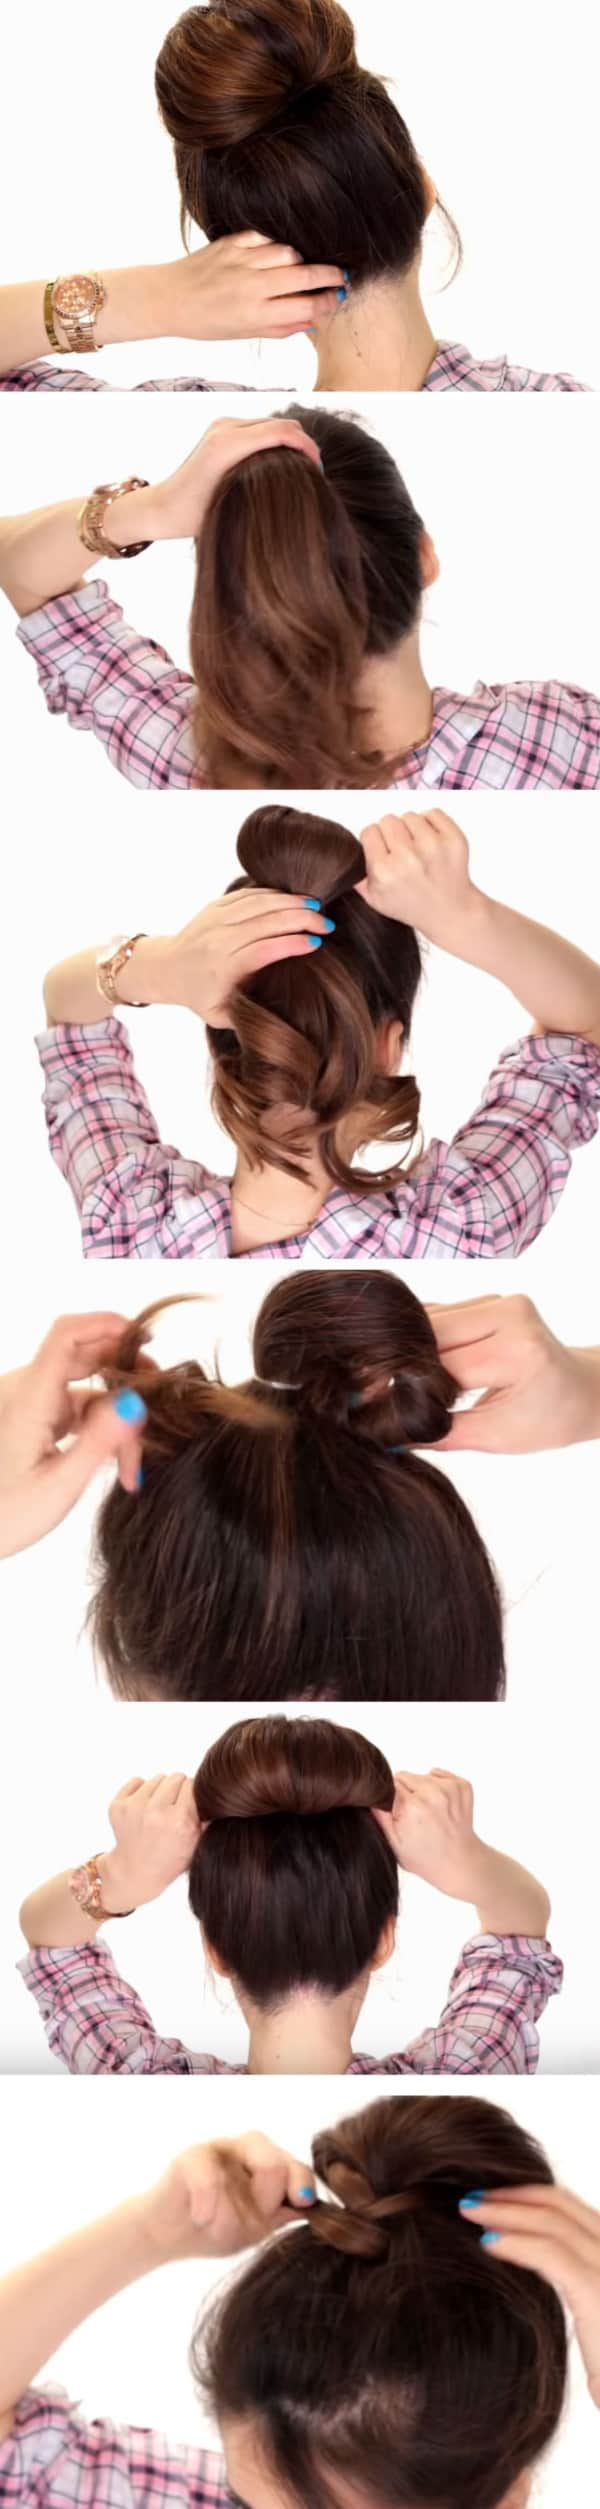 hairstyles-that-will-take-5-minutes-or-less